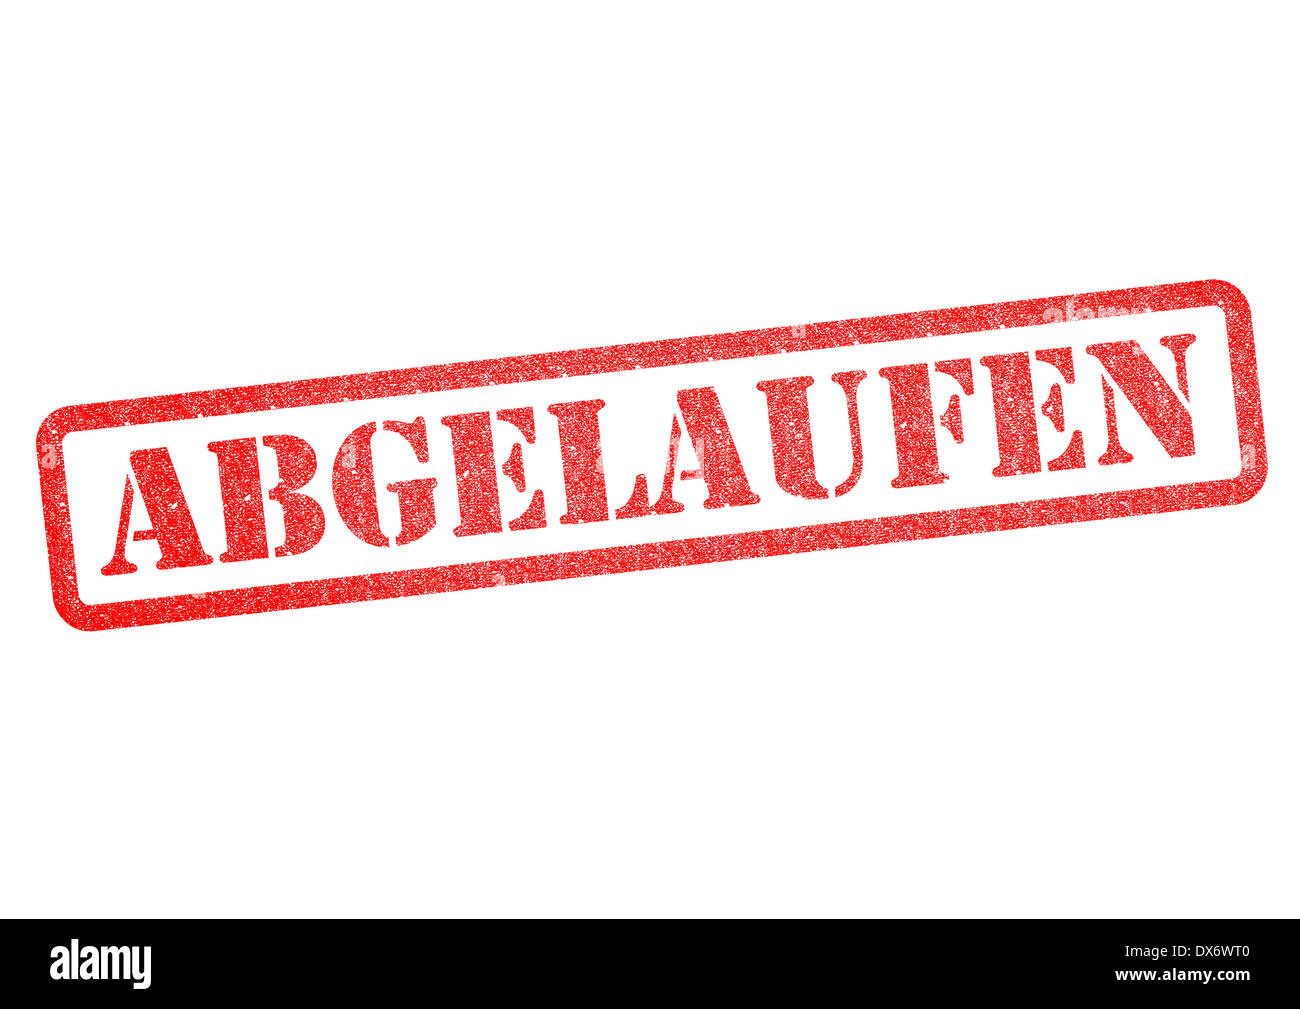 Abgelaufen (Expired) Stempel/Stamp over a white background. - Stock Image